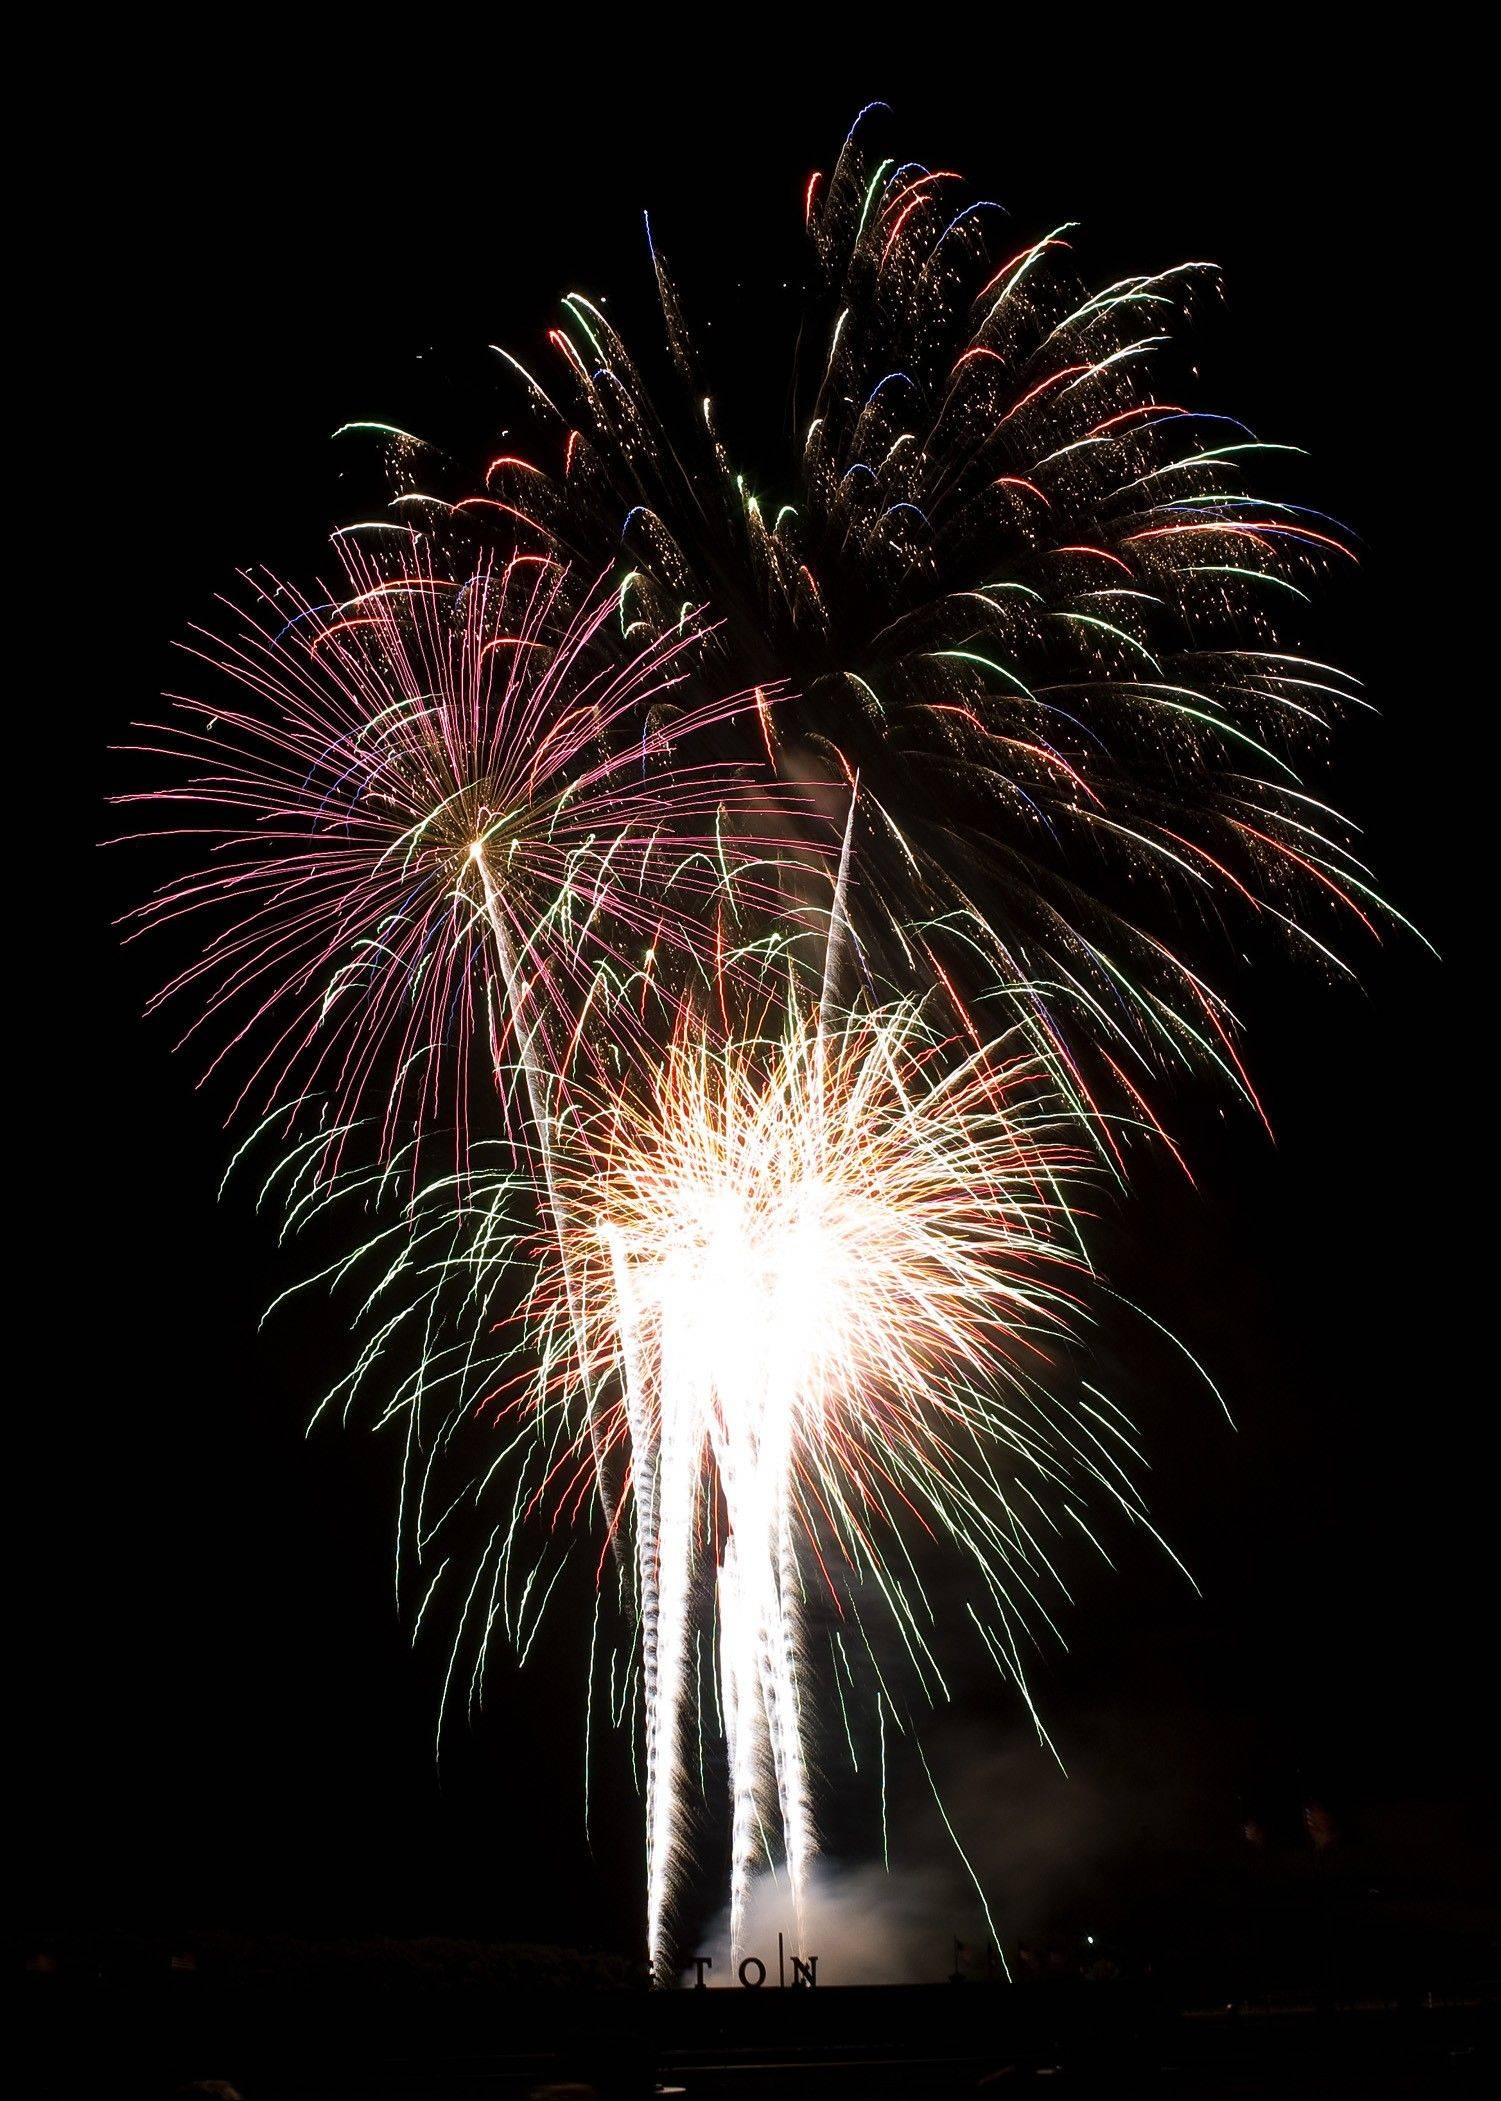 Fox River Grove moving fireworks show from July to September